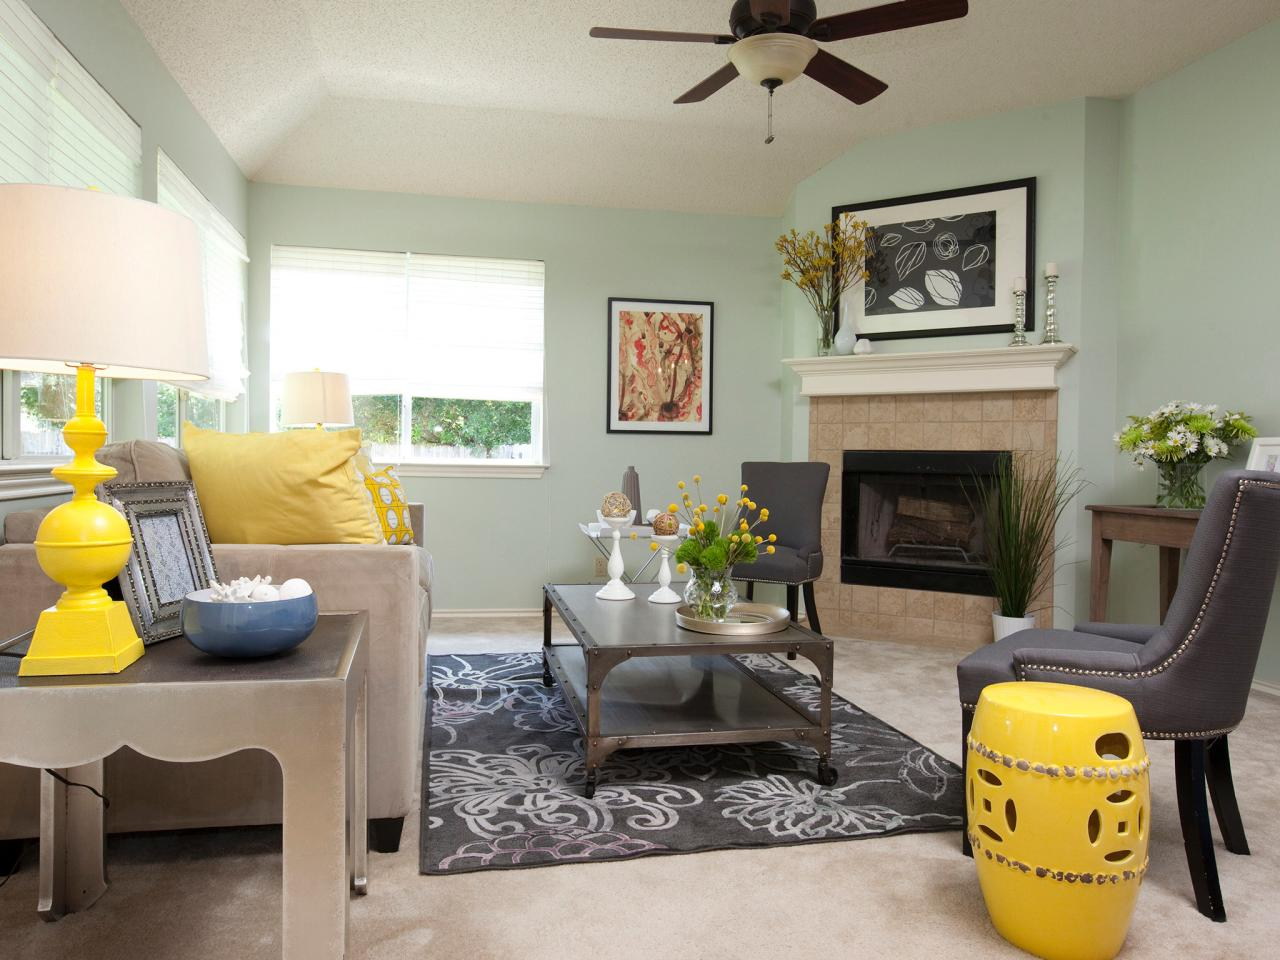 Pretentious Mint Walls Soften Feeling Contrast A Vibrantly Colored Room 2 Living Rooms Interior Living Rooms Interior Design interior Living Rooms Interior